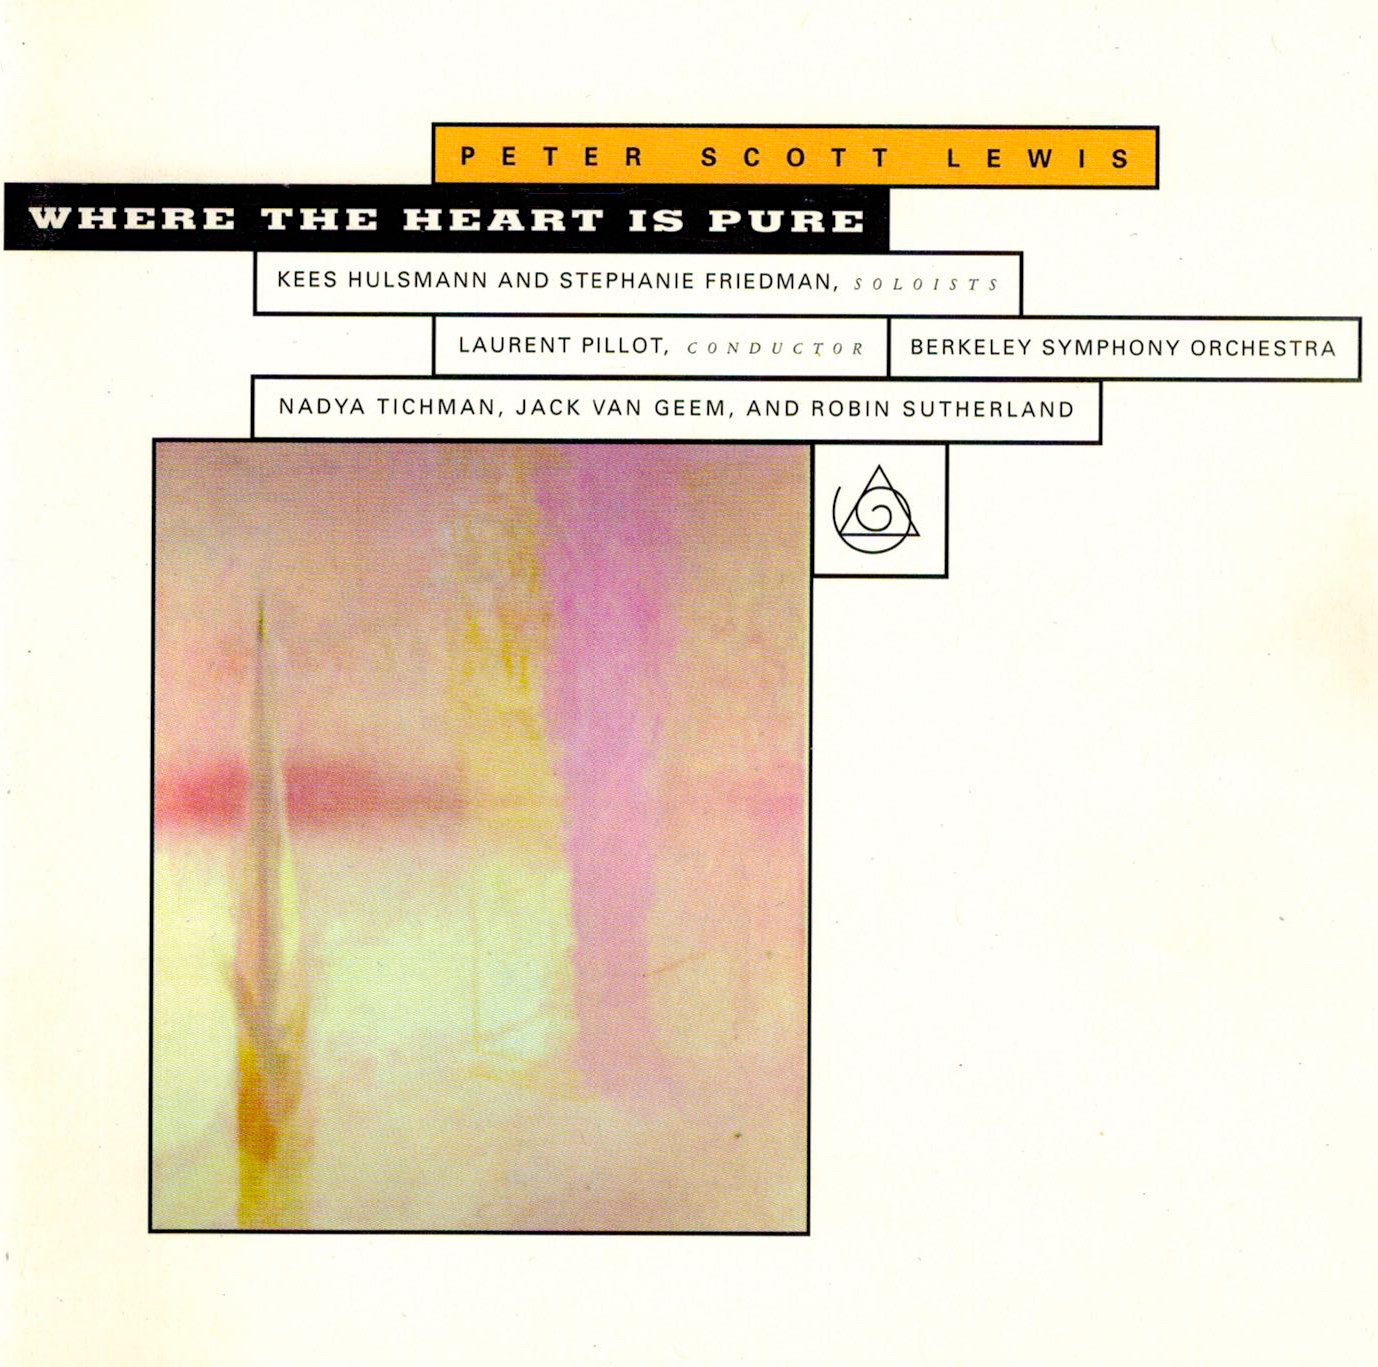 Peter Scott Lewis, Peter Lewis, Peter Lewis, Composer: Where the Heart is Pure